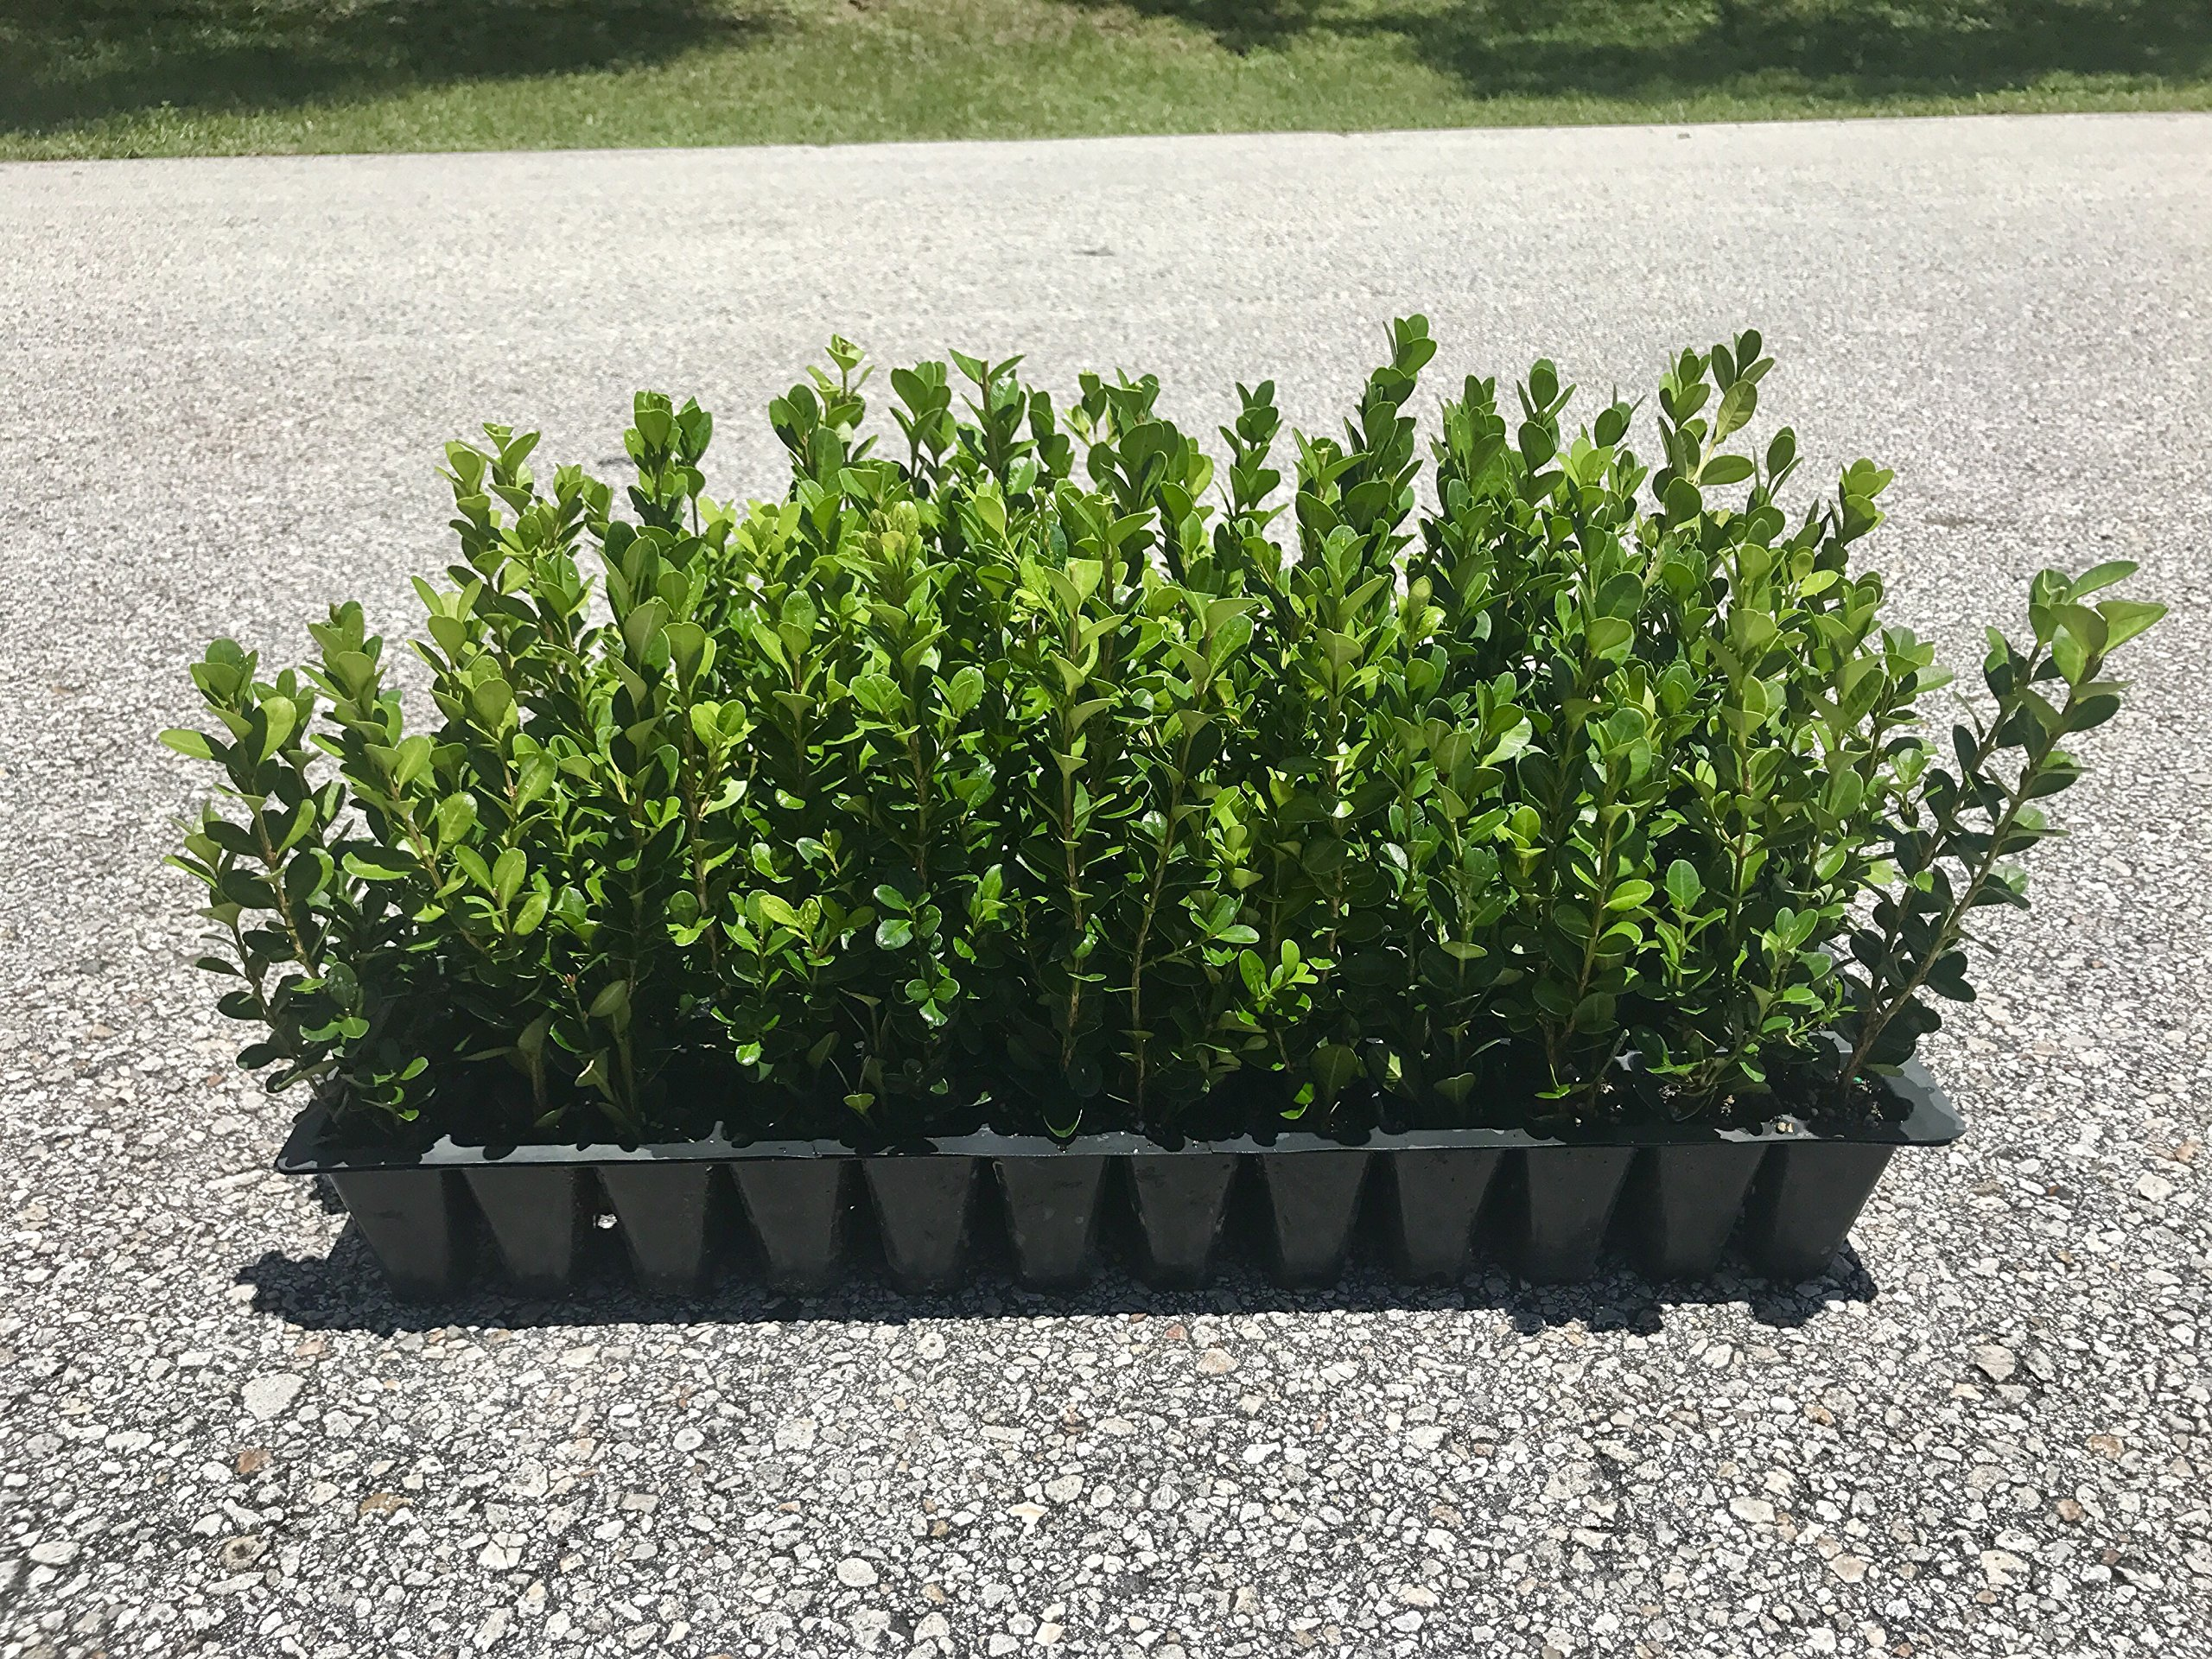 Winter Gem Korean Boxwood Qty 60 Live Plants Fast Growing Cold Hardy Evergreen by Florida Foliage